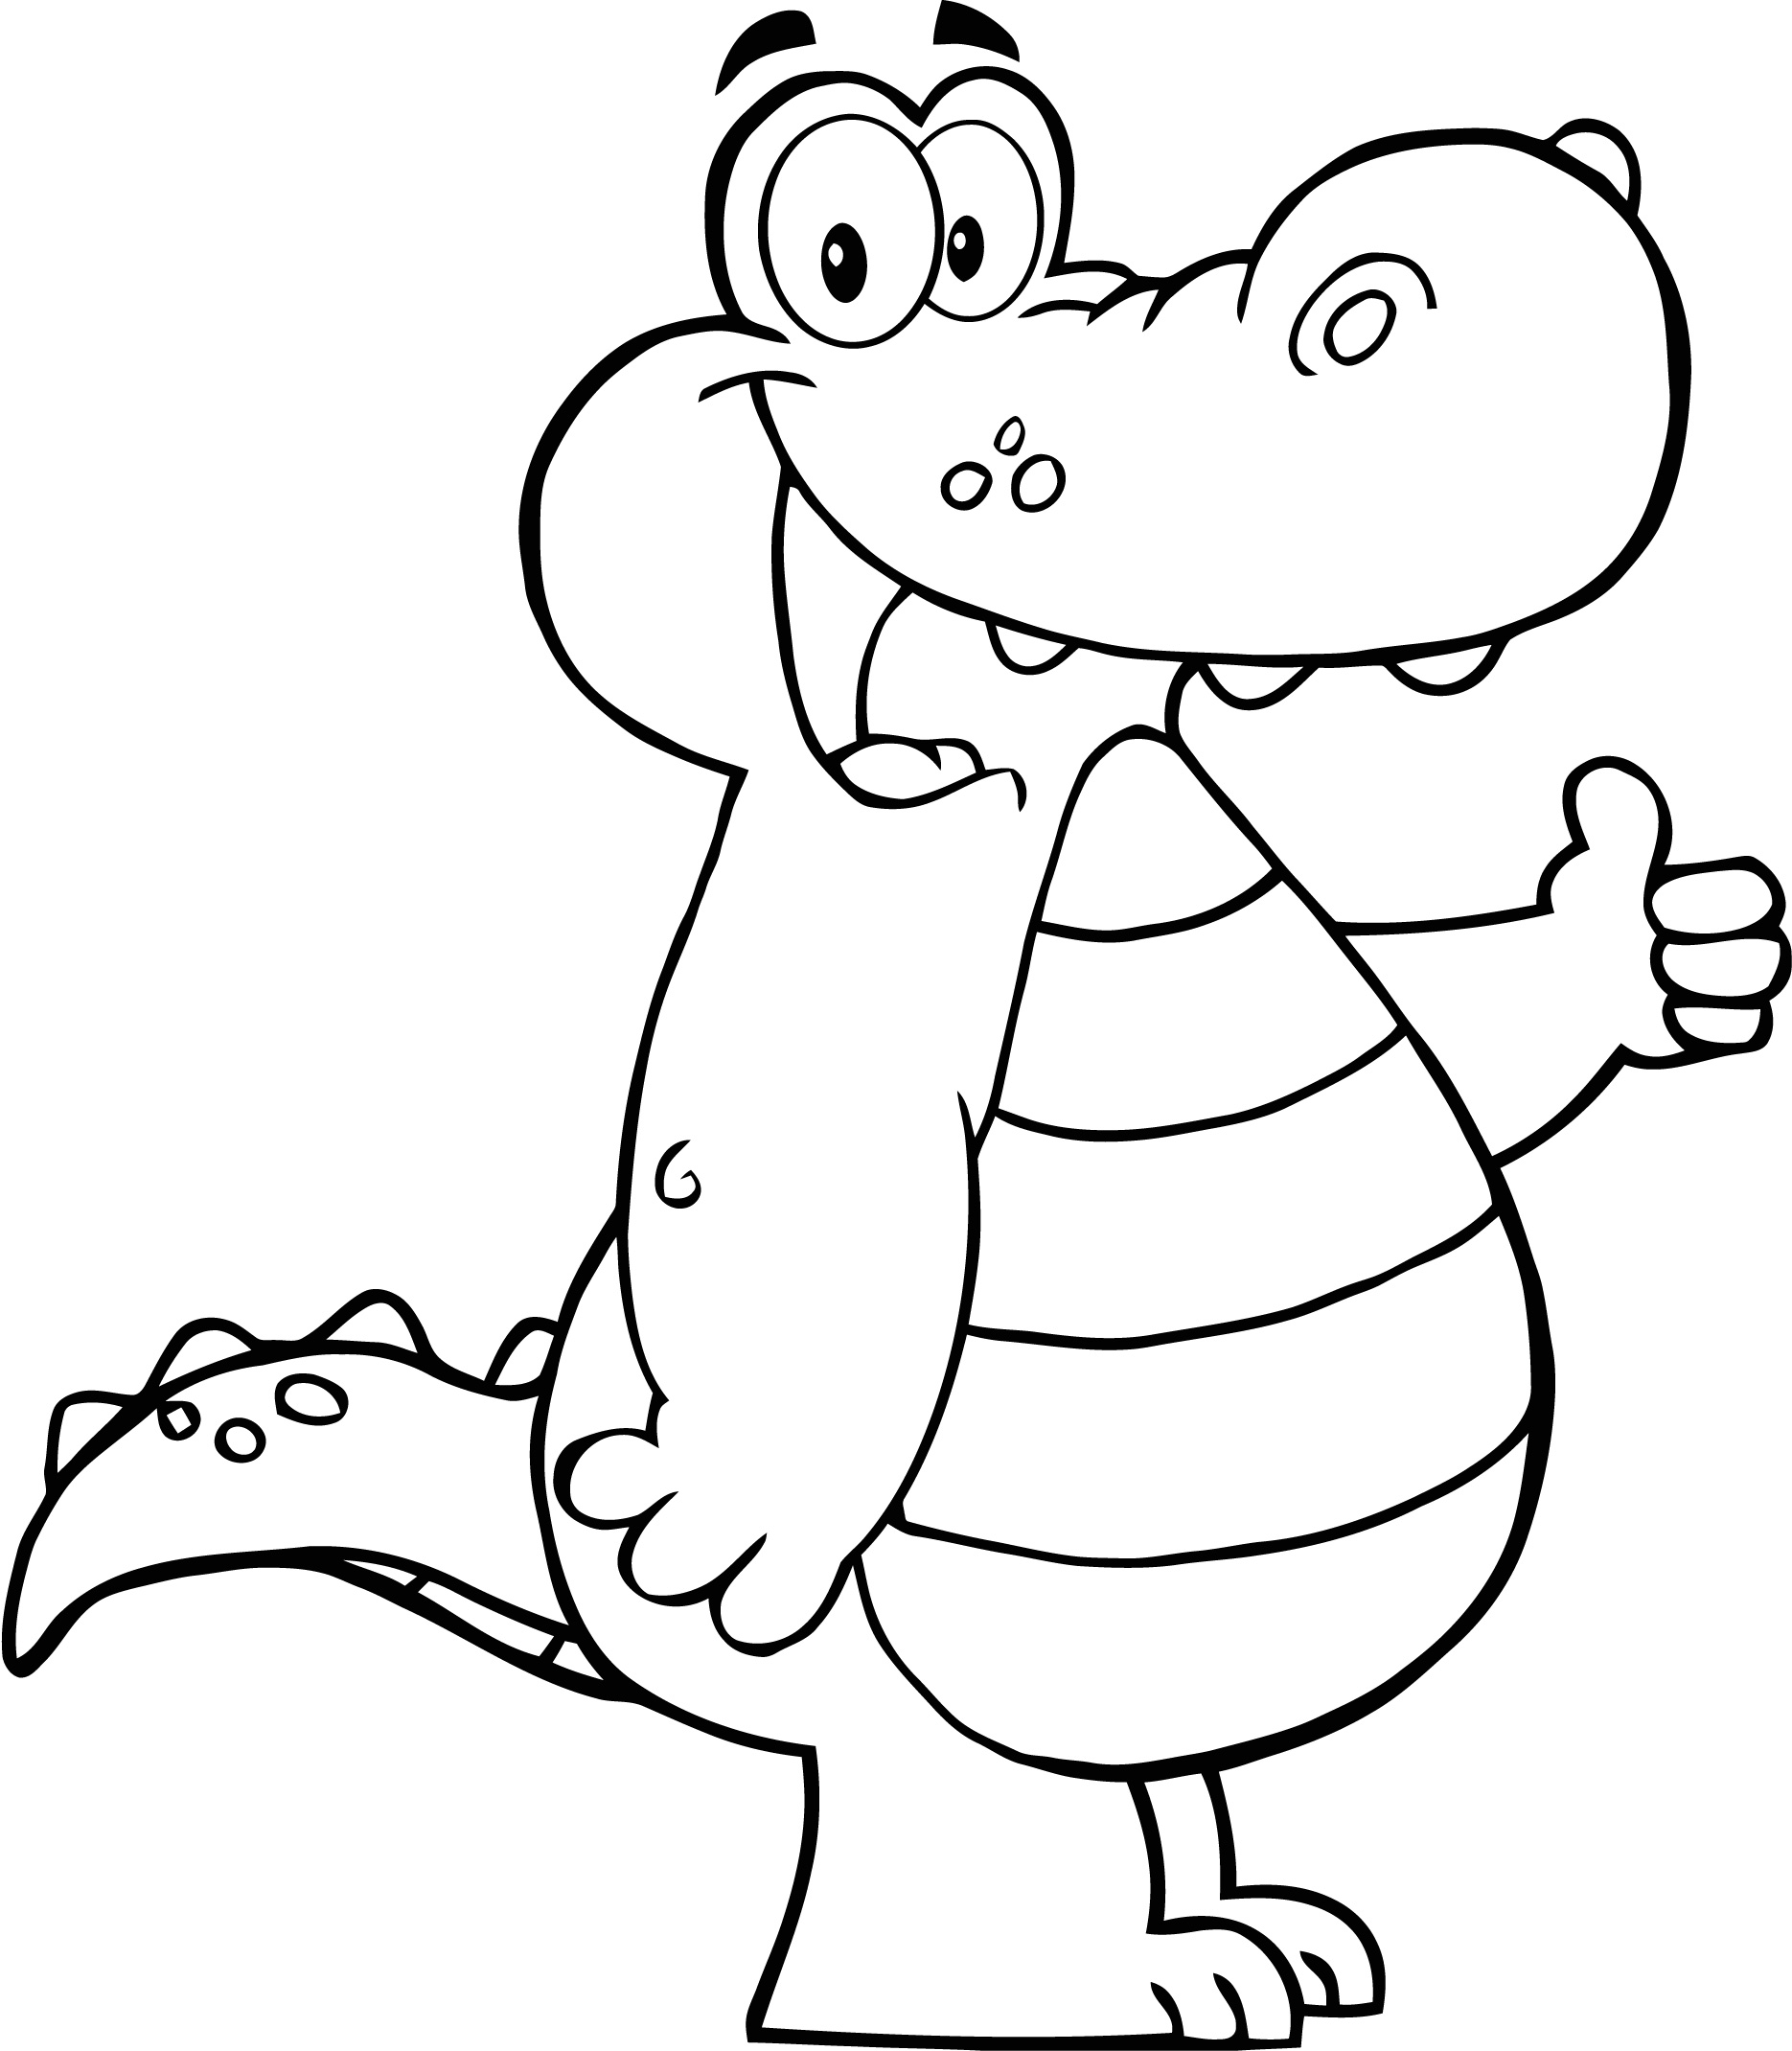 1870x2140 Coloring Page Of Alligator Showing Thumbs Up